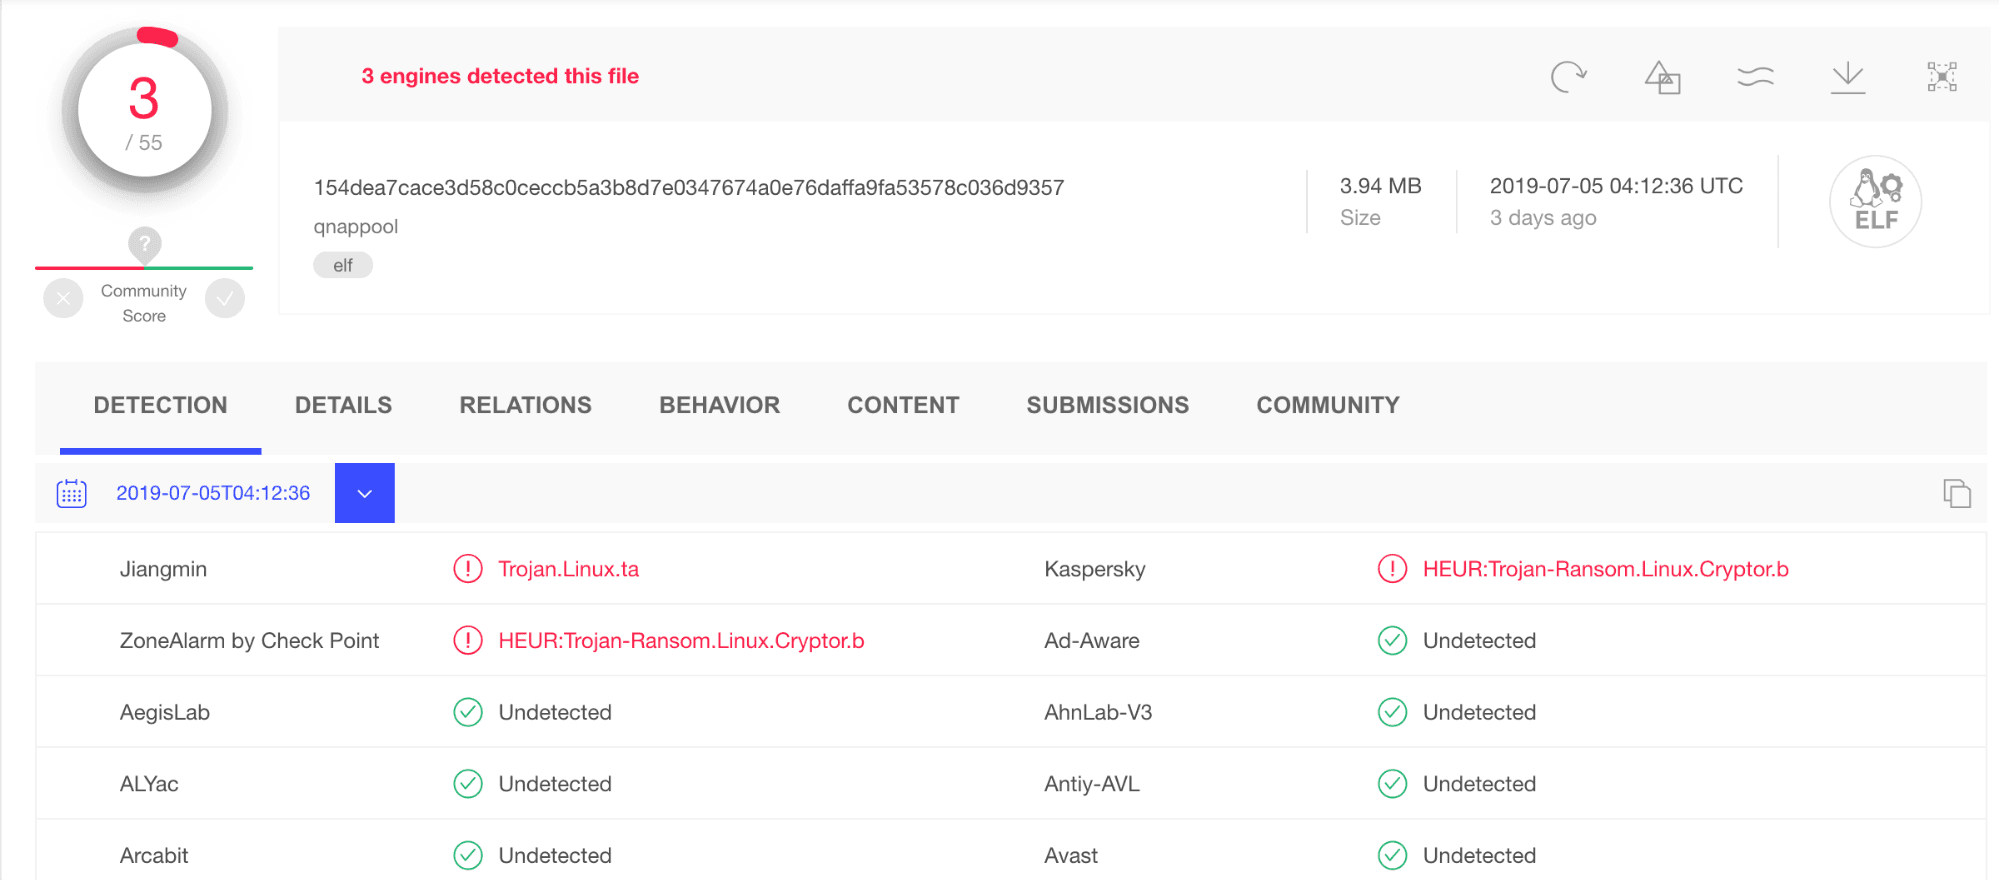 Low detection rate on VirusTotal